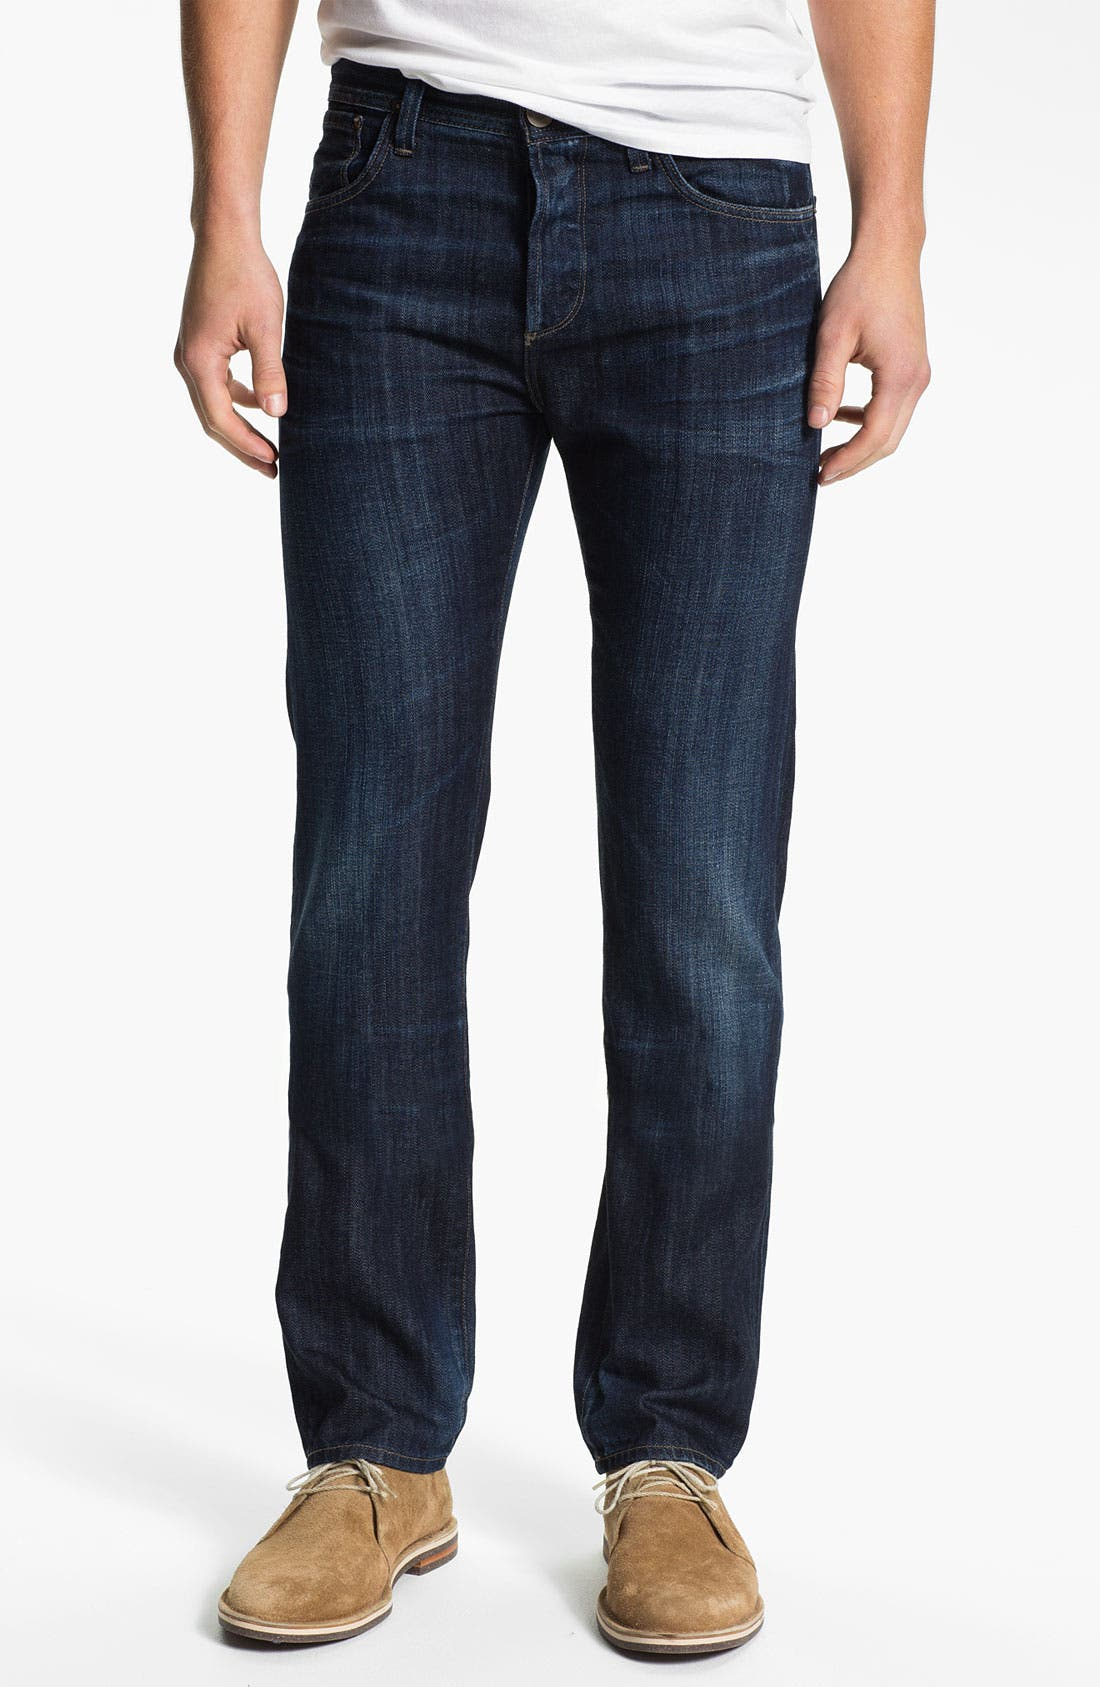 Main Image - Citizens of Humanity 'Core' Slim Straight Leg Jeans (Gleen)